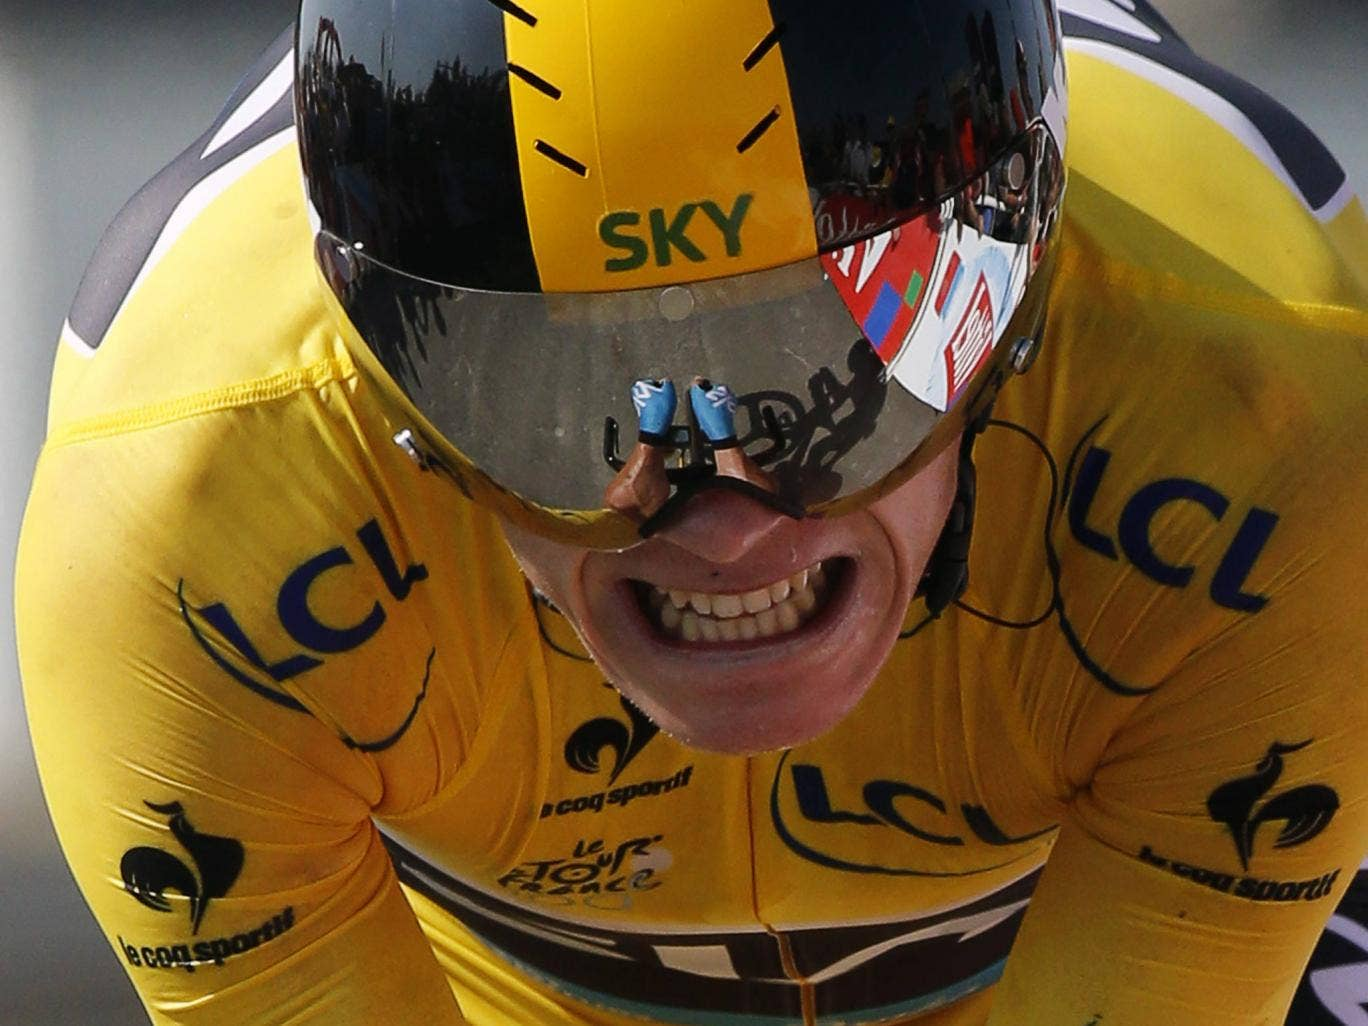 Chris Froome pictures on stage 11 of the Tour